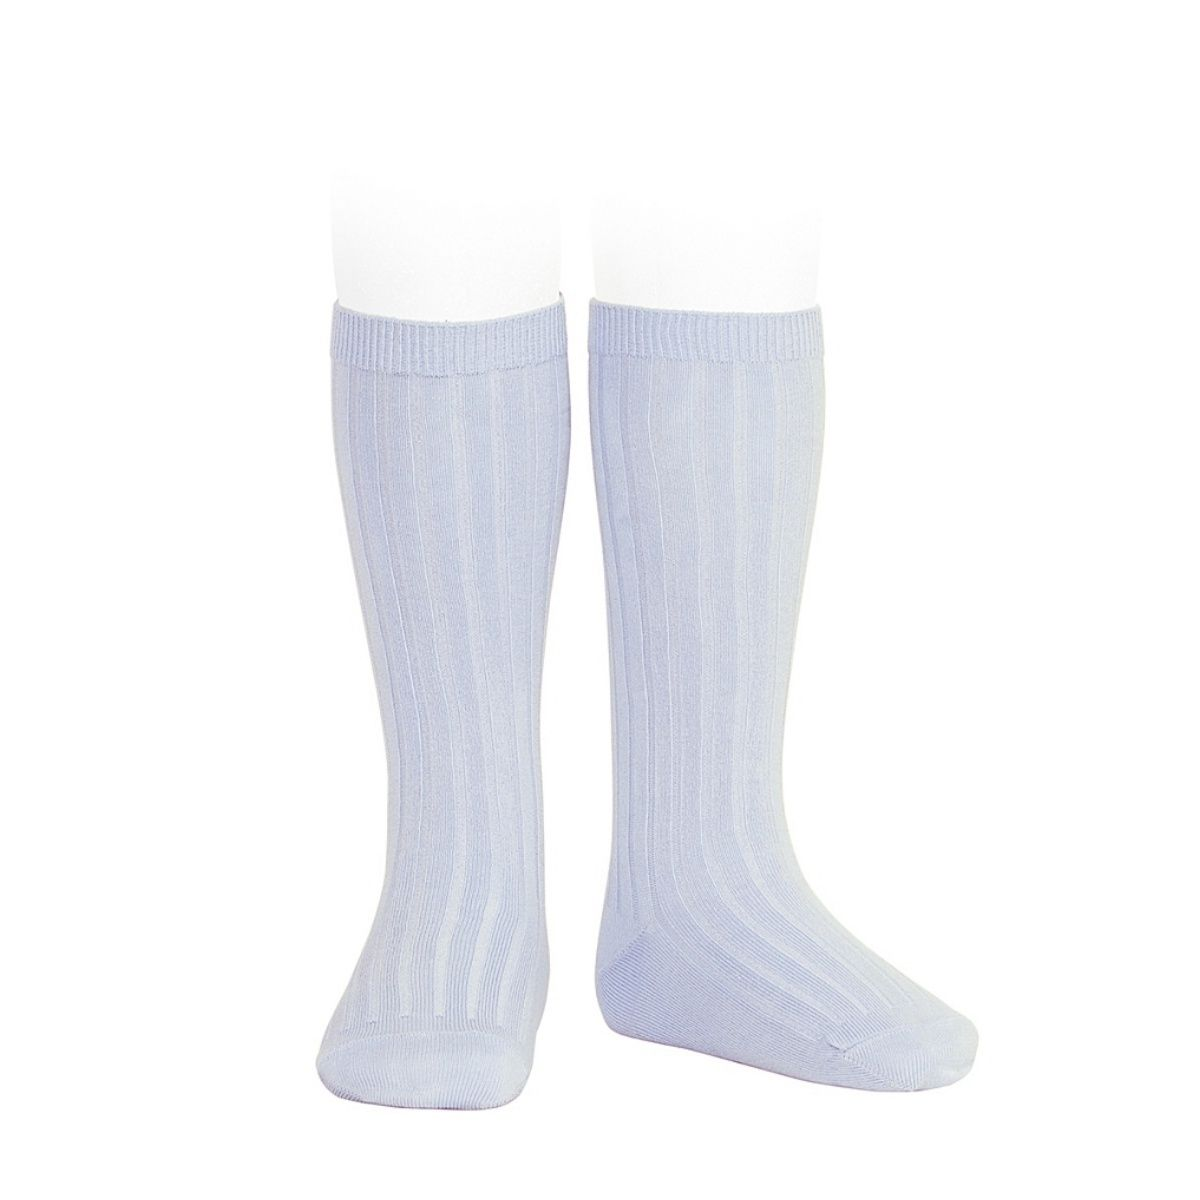 Wide Ribbed Cotton Knee High Socks baby blue - Condor